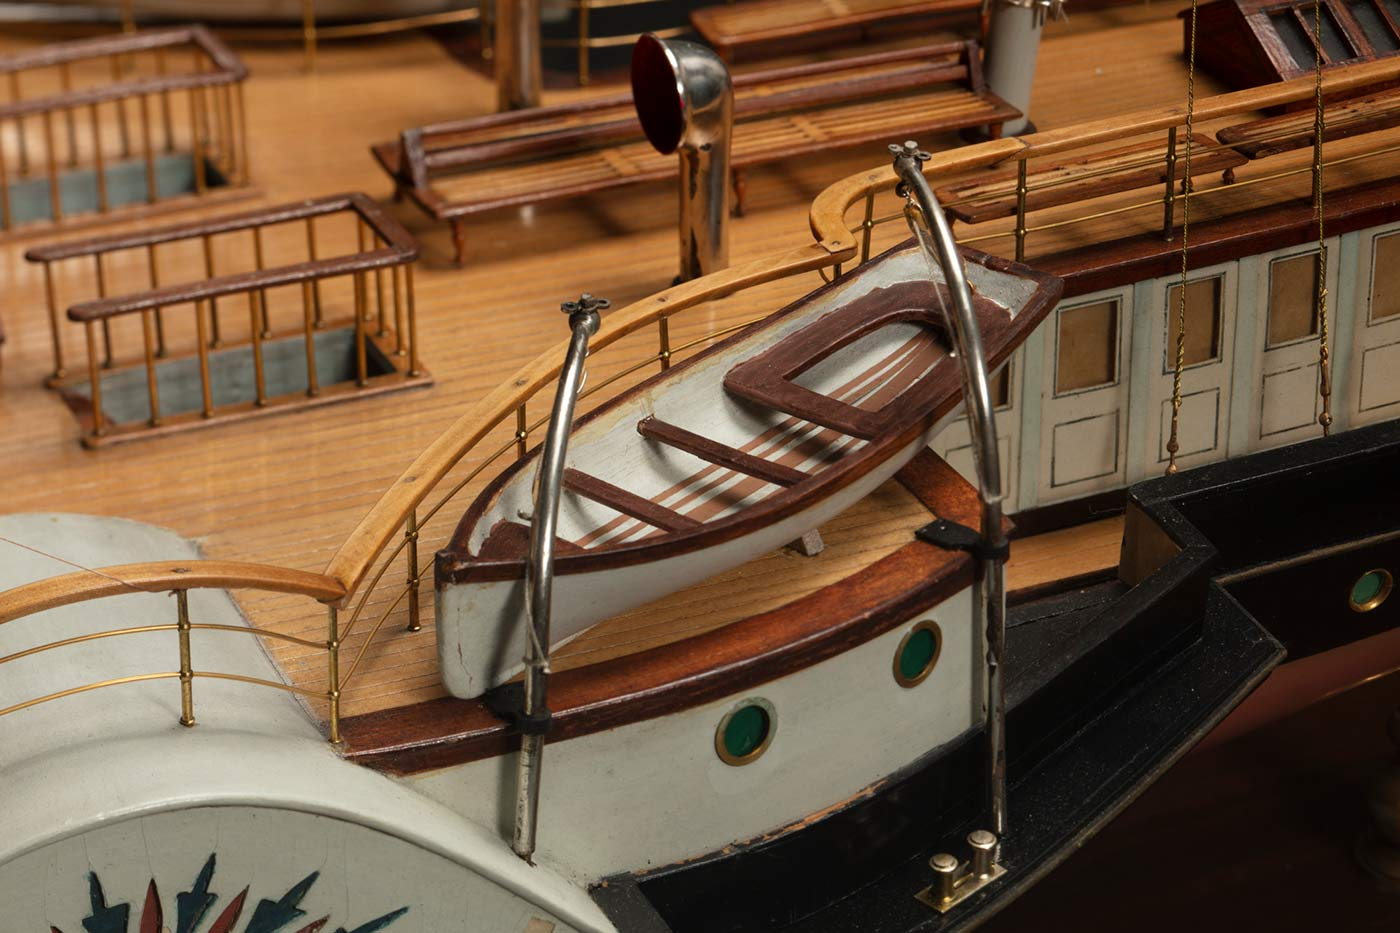 Detail of a model of a ship featuring a life boat. - click to view larger image